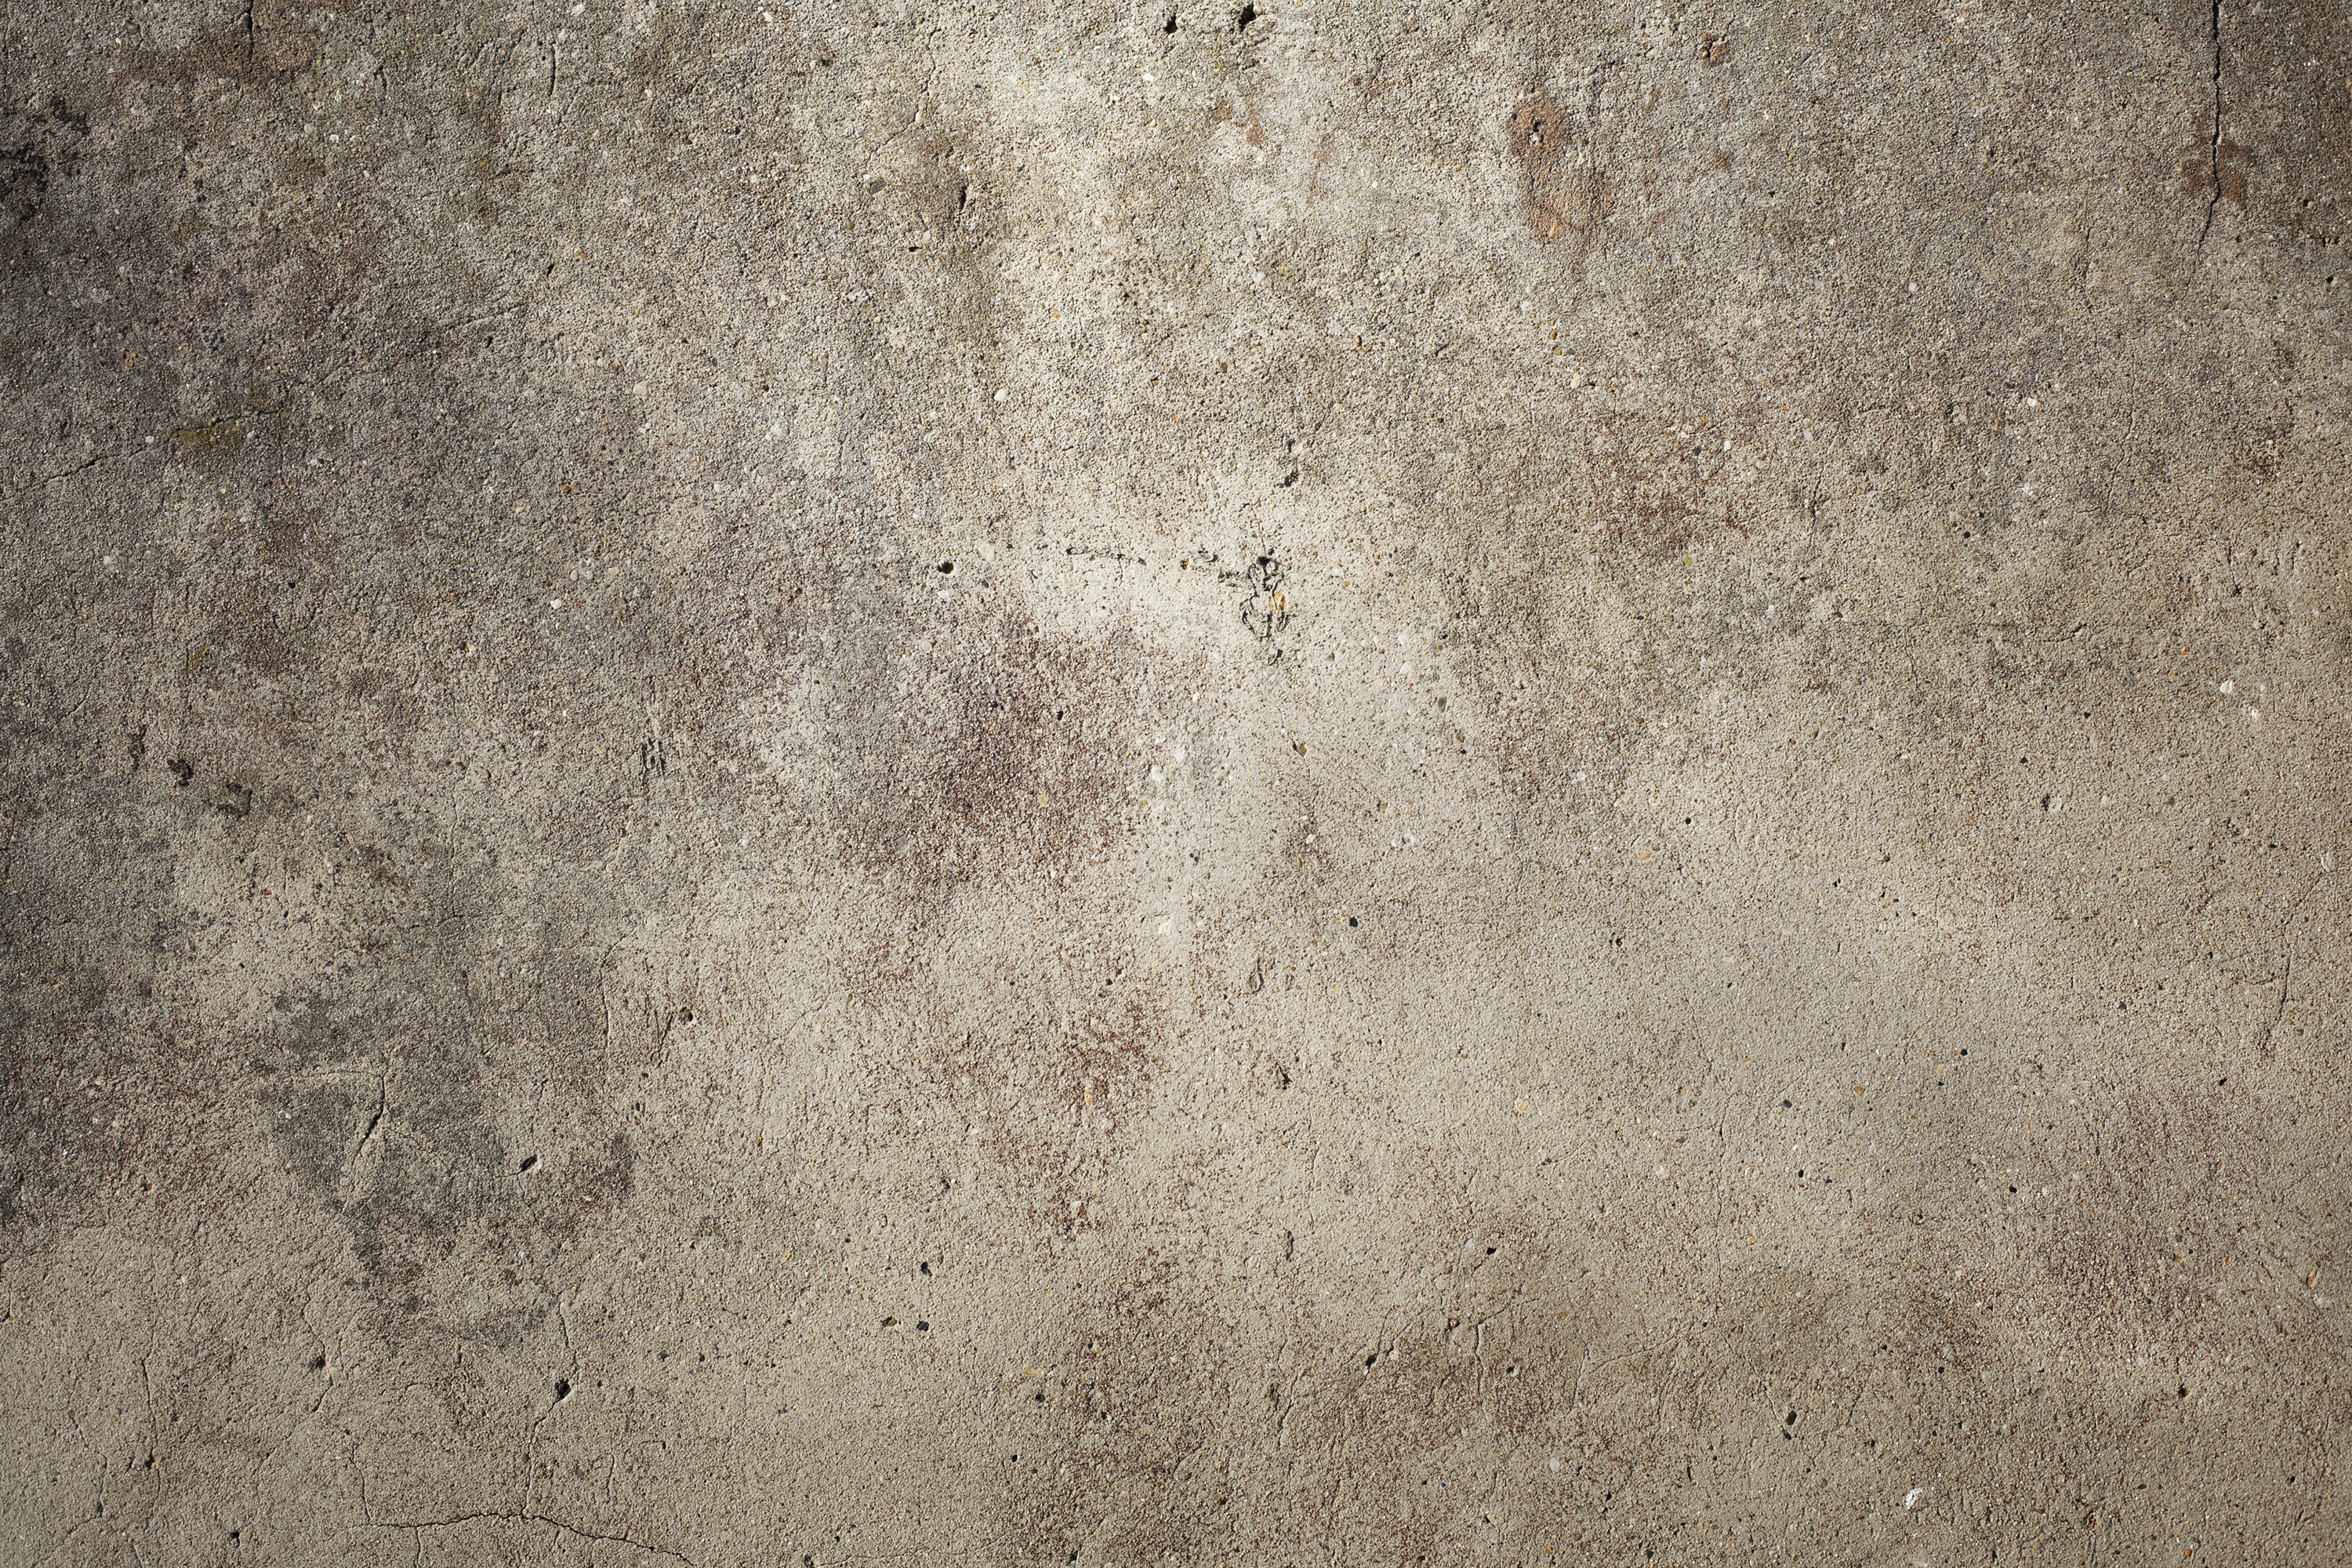 Grunge Concrete Wall Background As Jpg